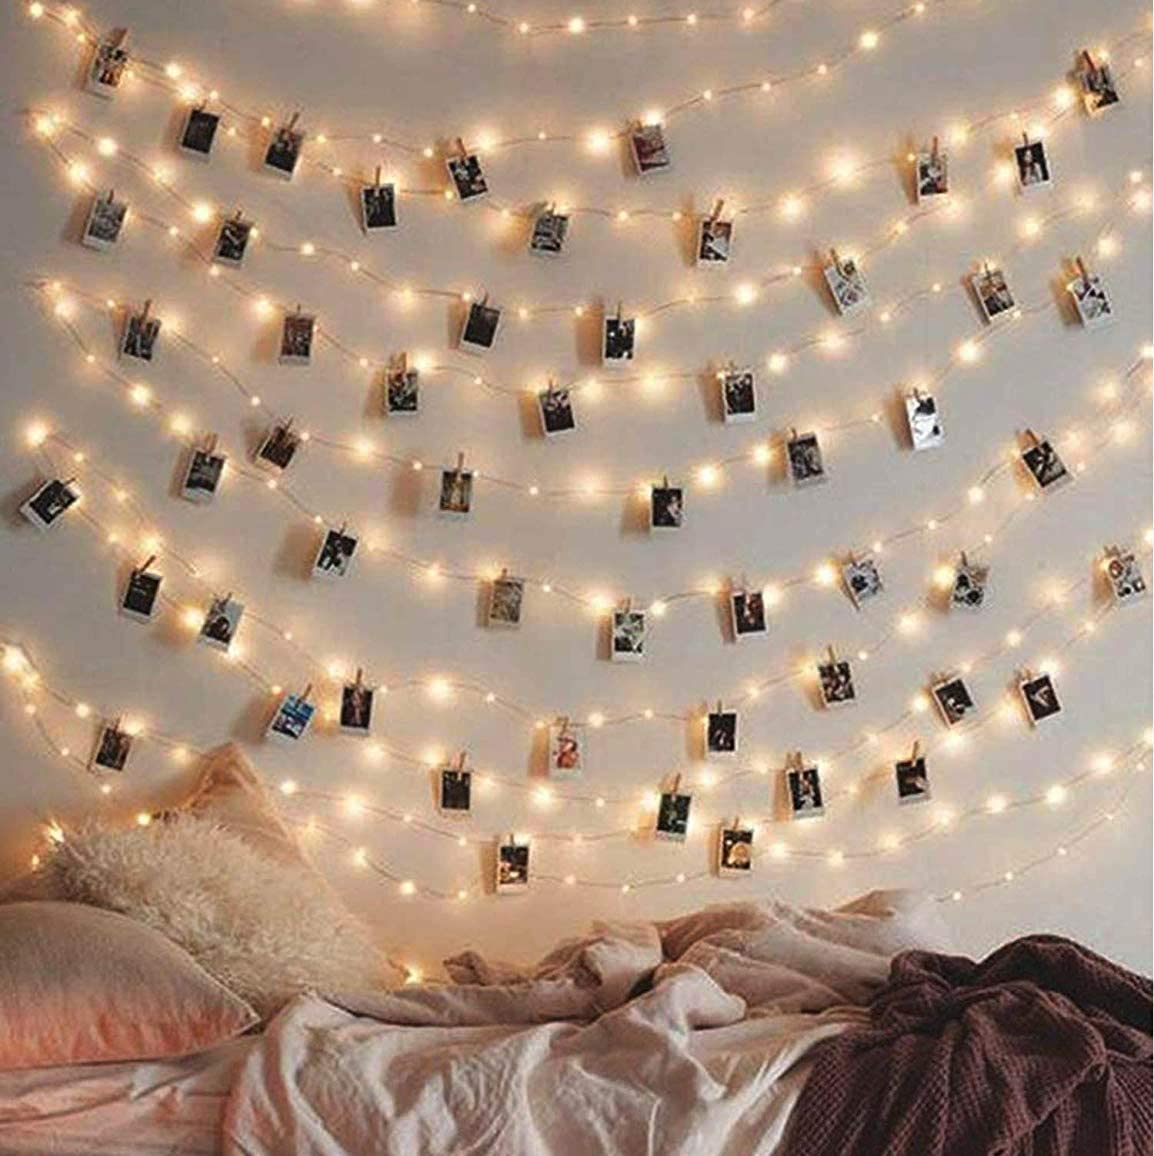 ELShy Photo Clips String Light 100 LED Waterproof Fairy String Lights with 50 Clear Clips, Battery and USB Powered with Cable for Party Christmas Home Decor, 33Ft 8 Modes Warm White (100LED/33Ft)